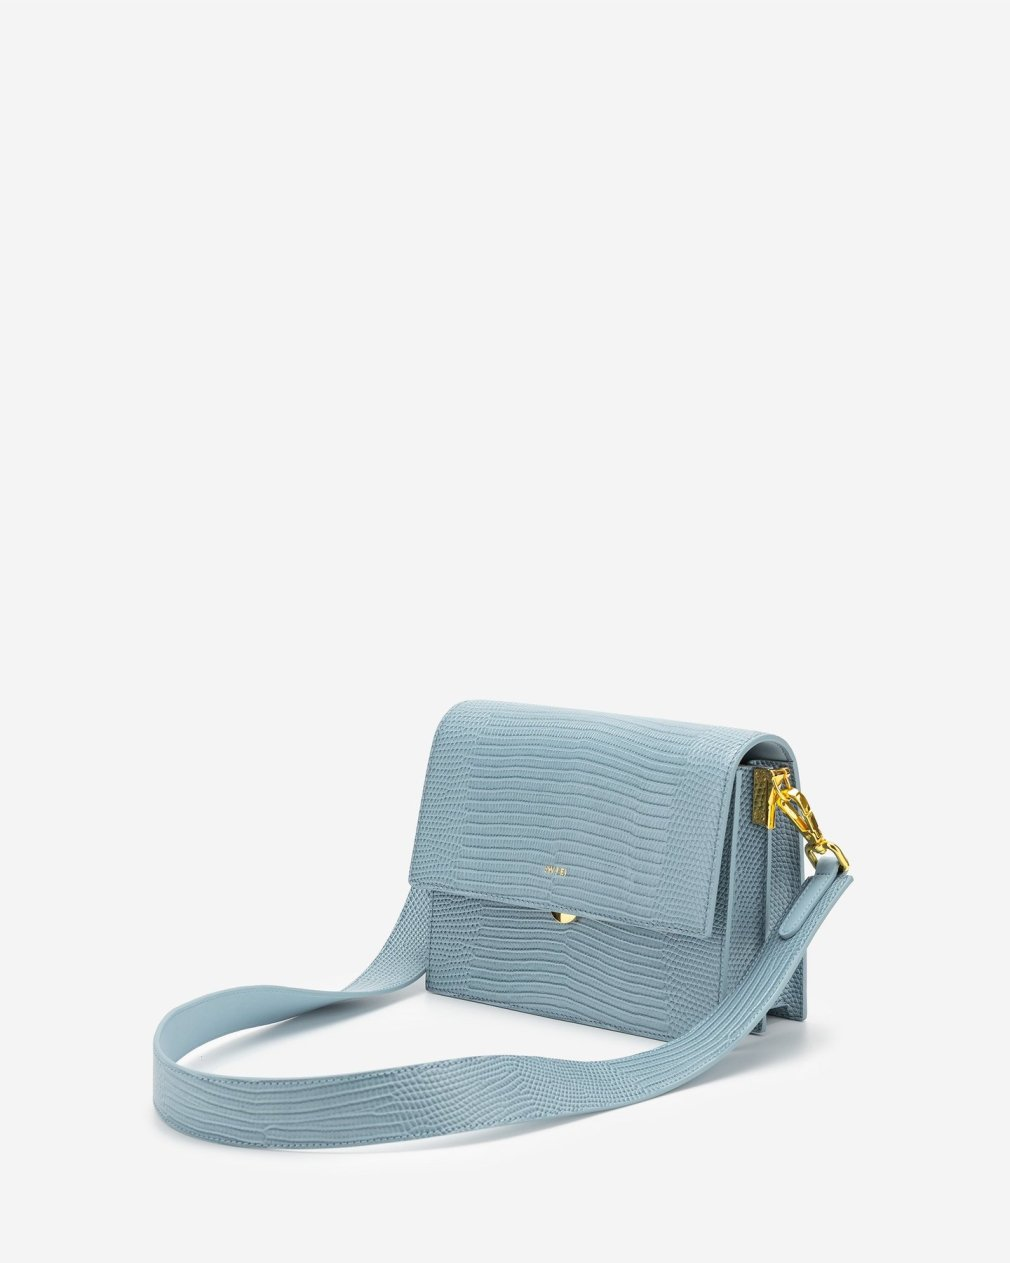 ullrichstore.com jw pei mini flap bag blue